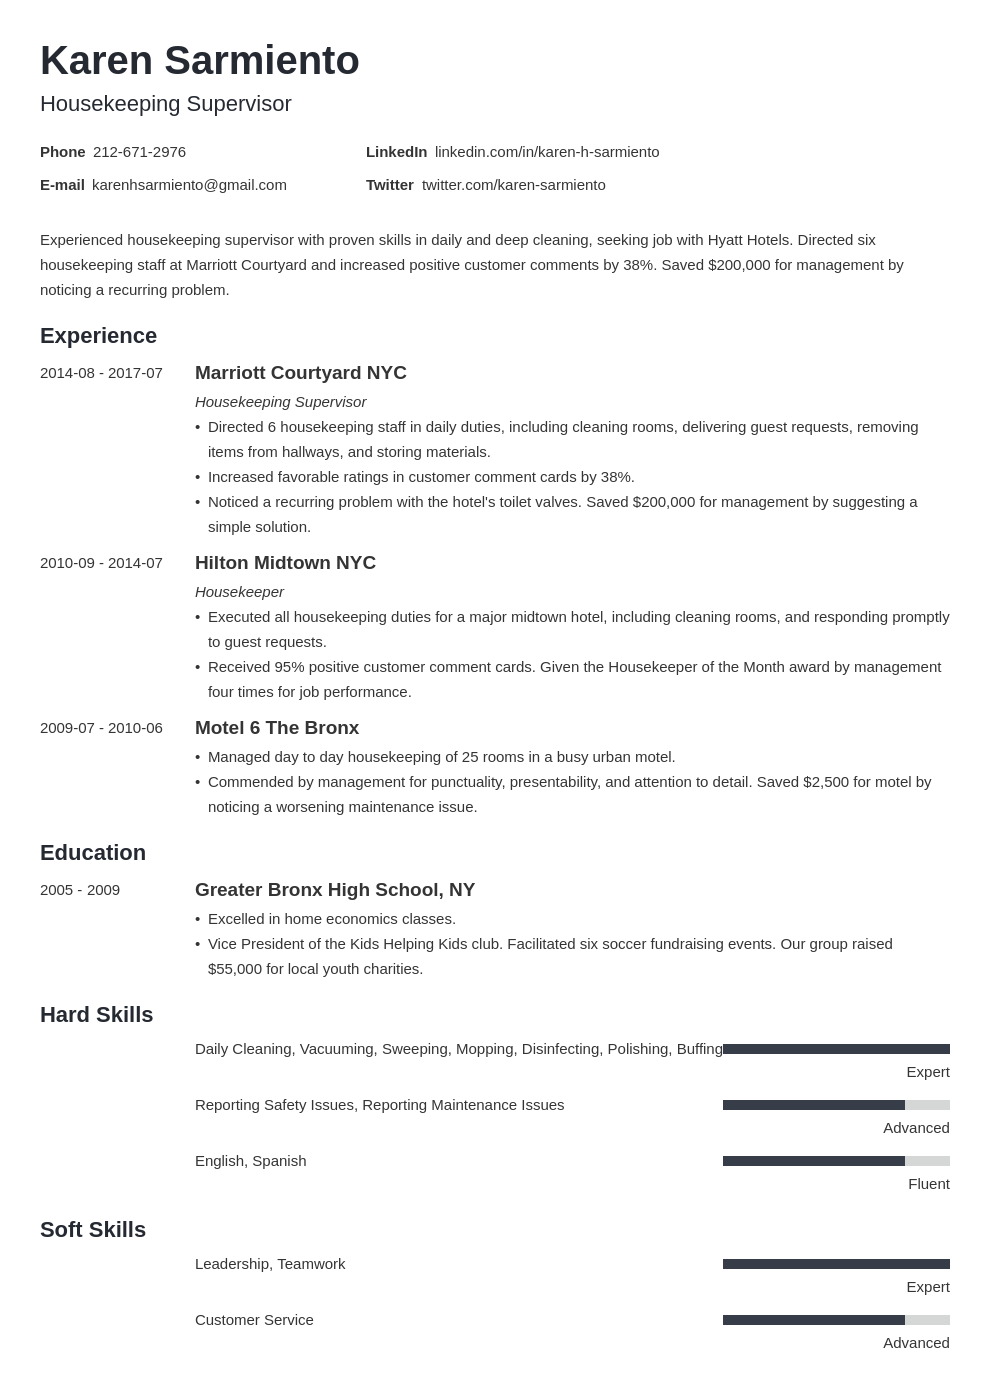 Housekeeping Resume Samples Skills For All Housekeepers